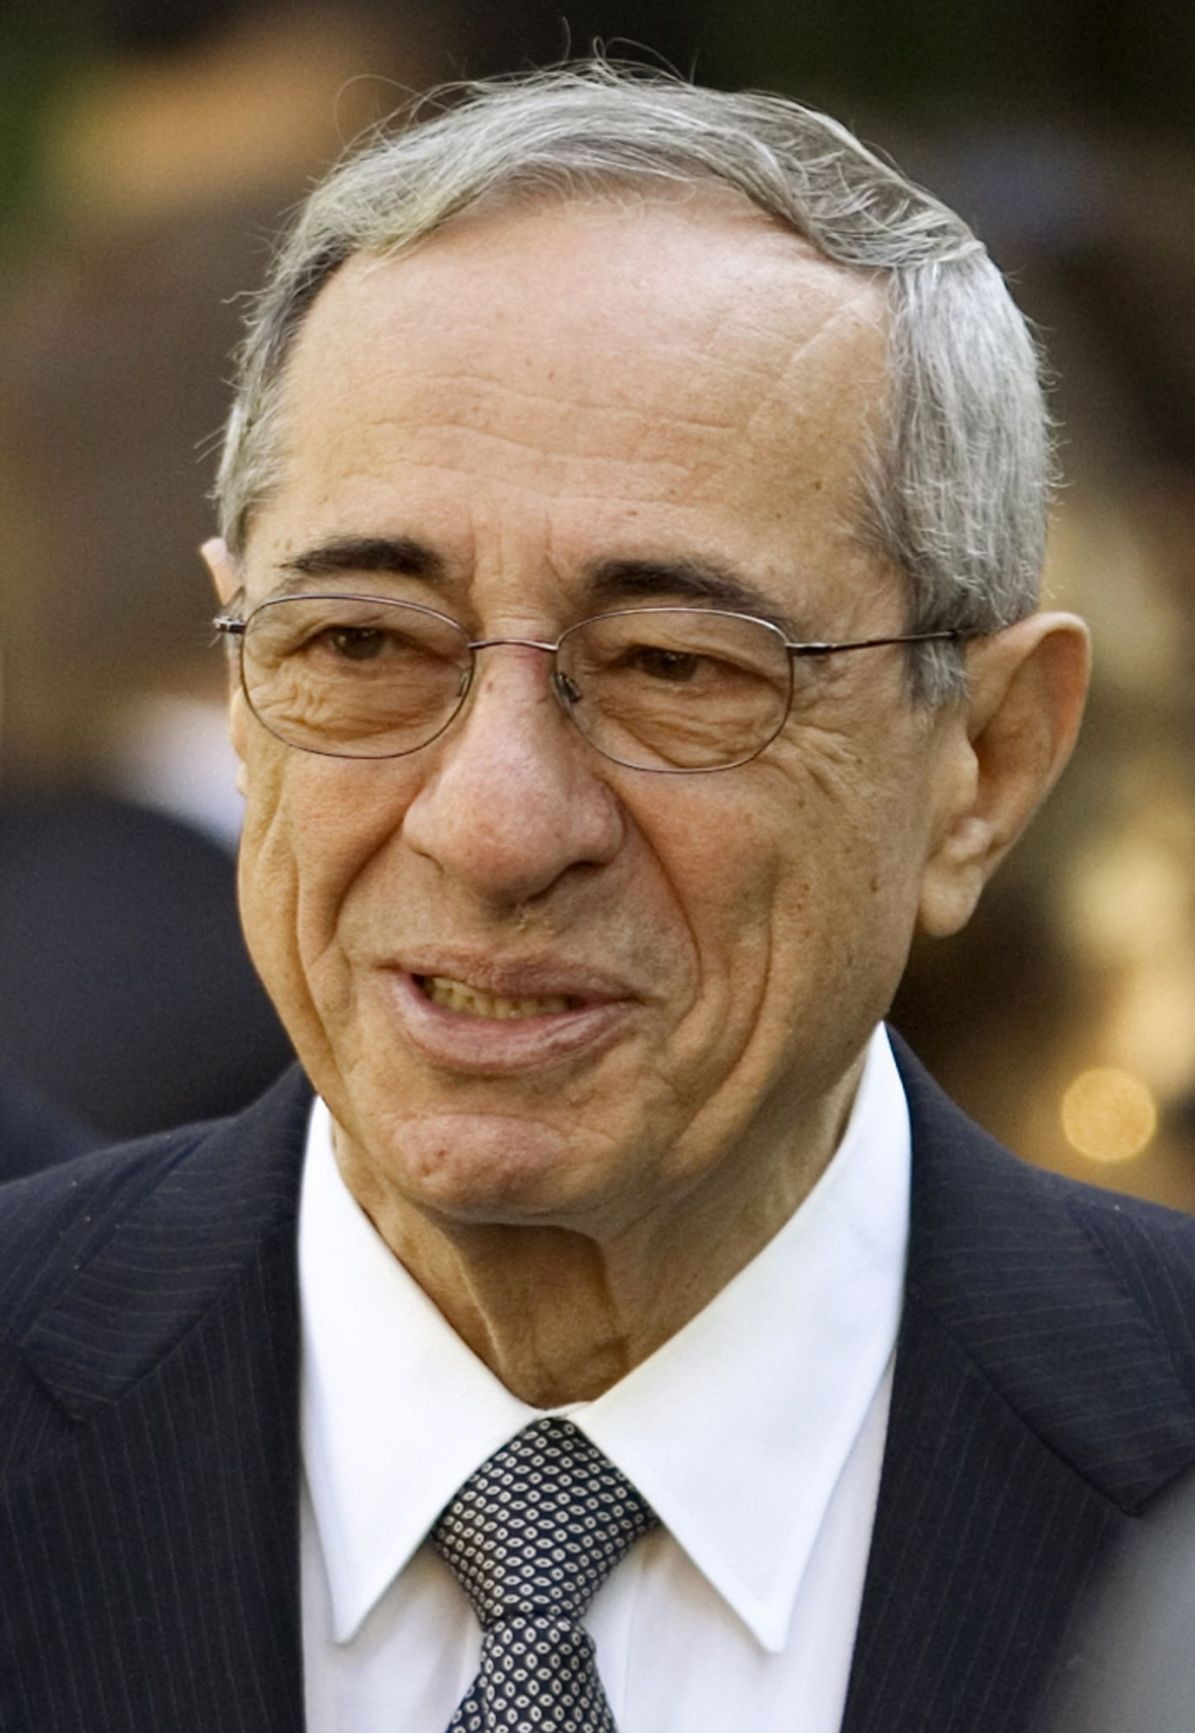 Mario Cuomo was eloquent, but still wrong